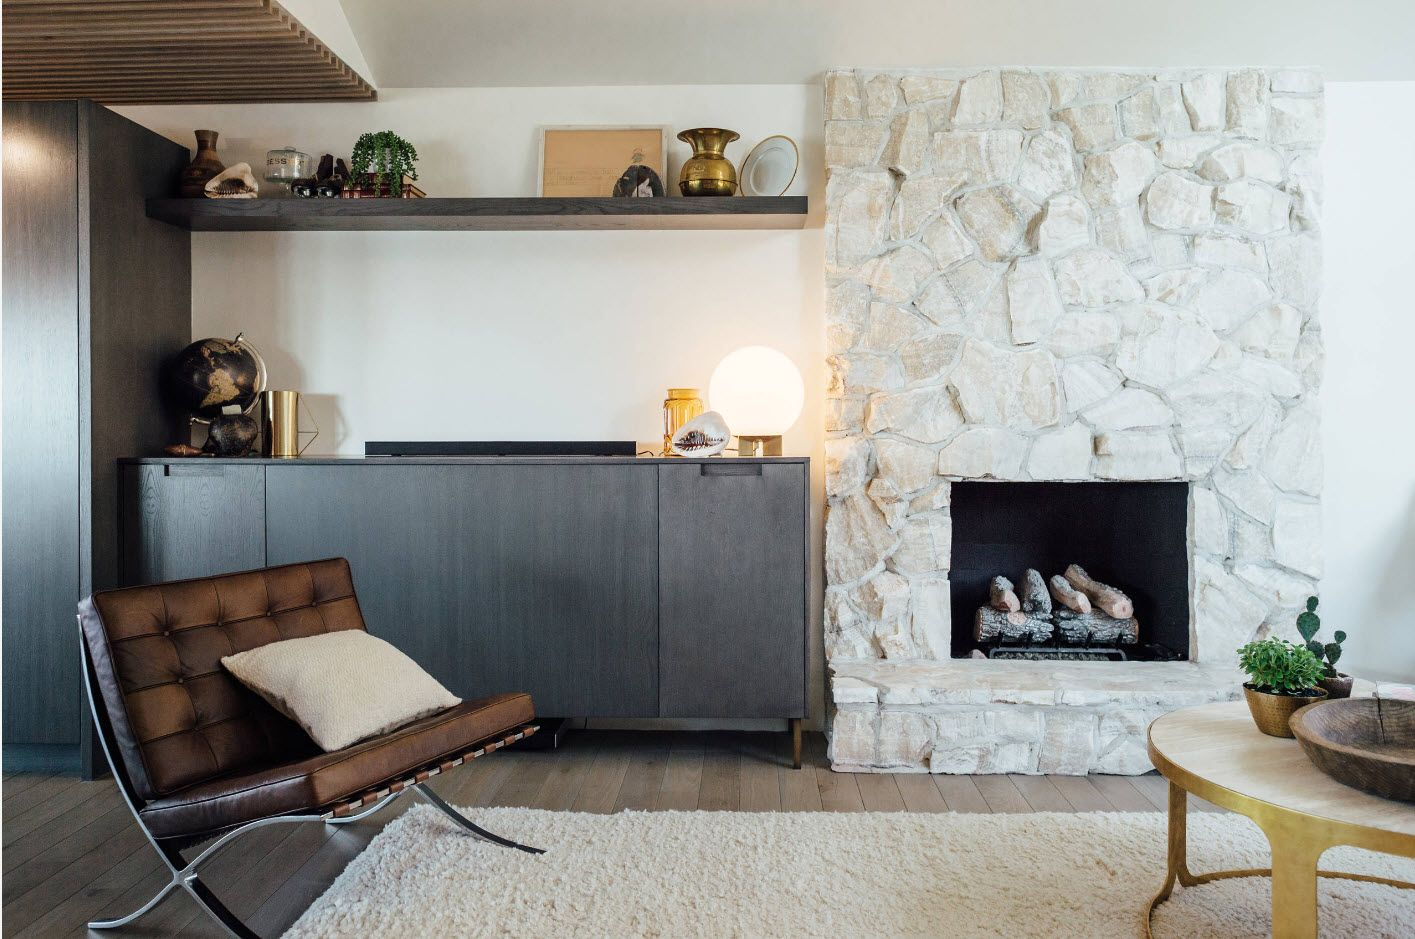 Touch of eco style in minimalistic white interior